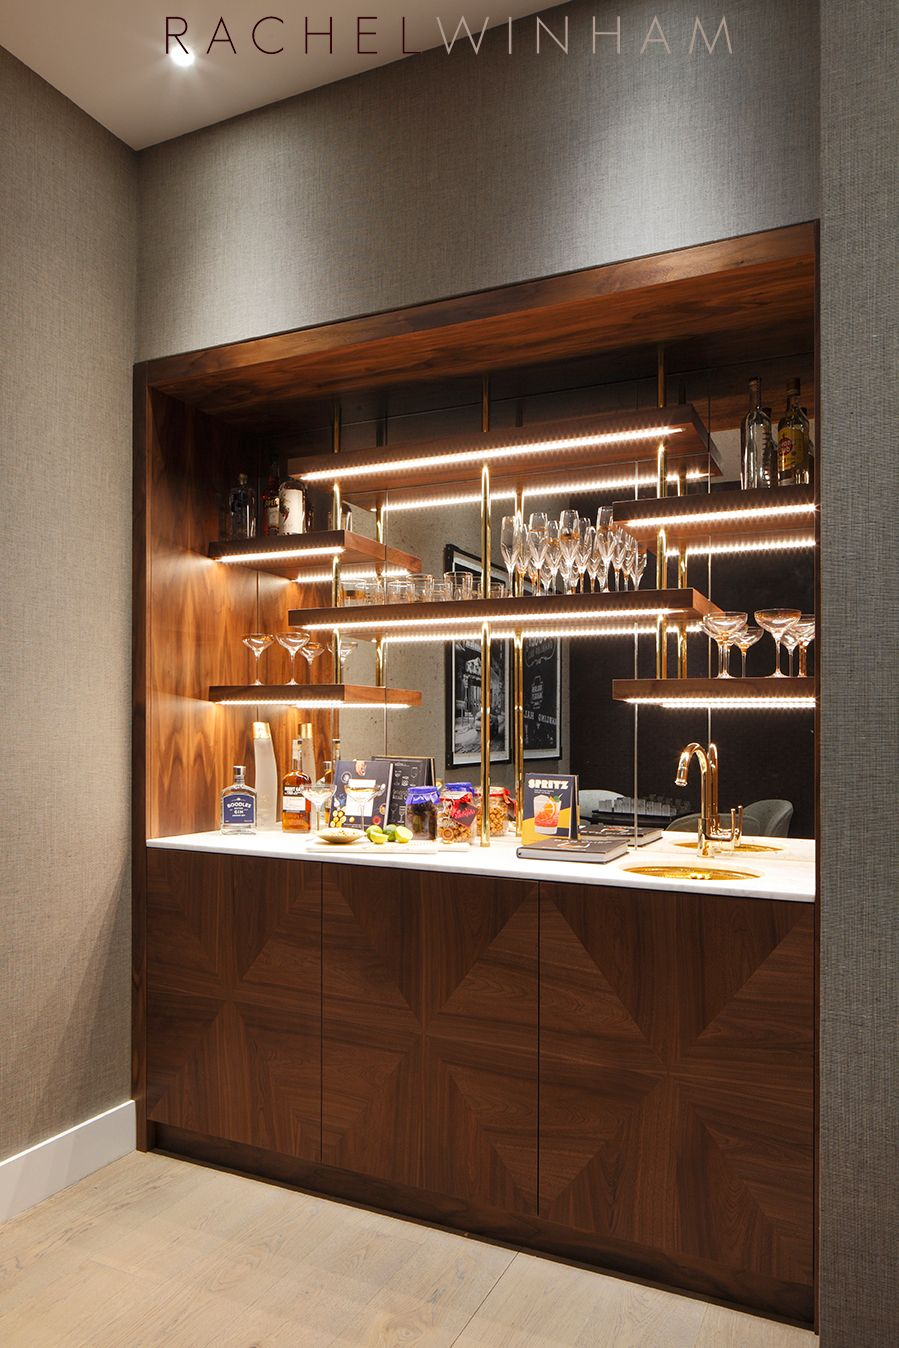 Bar Rachel Winham Interior Design Home Bar Rooms Living